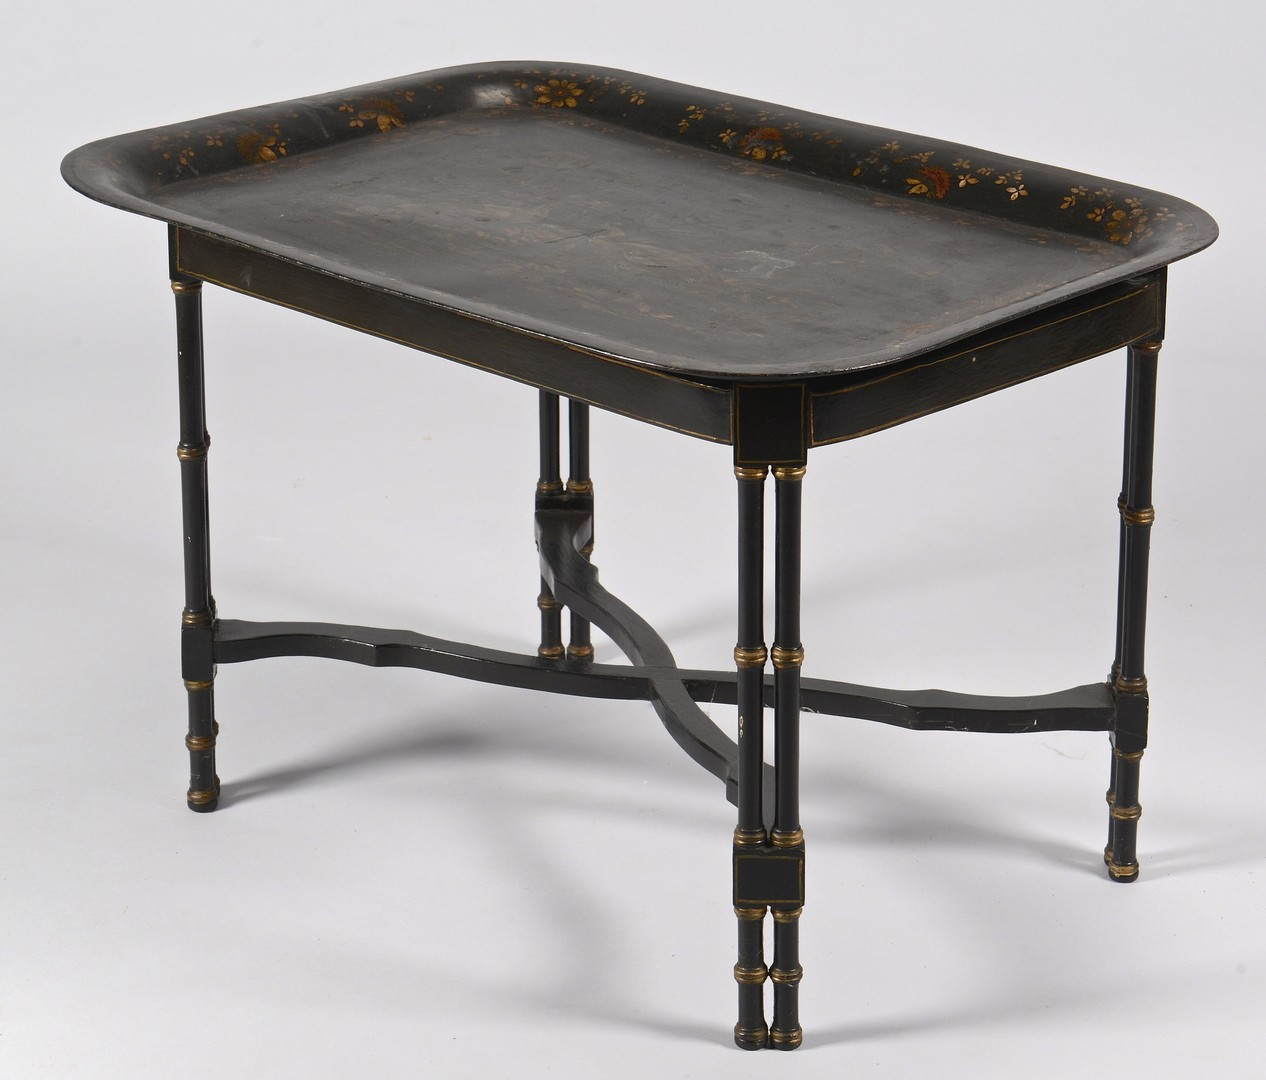 Lot 310: Victorian Toile Tray on Lacquer Stand